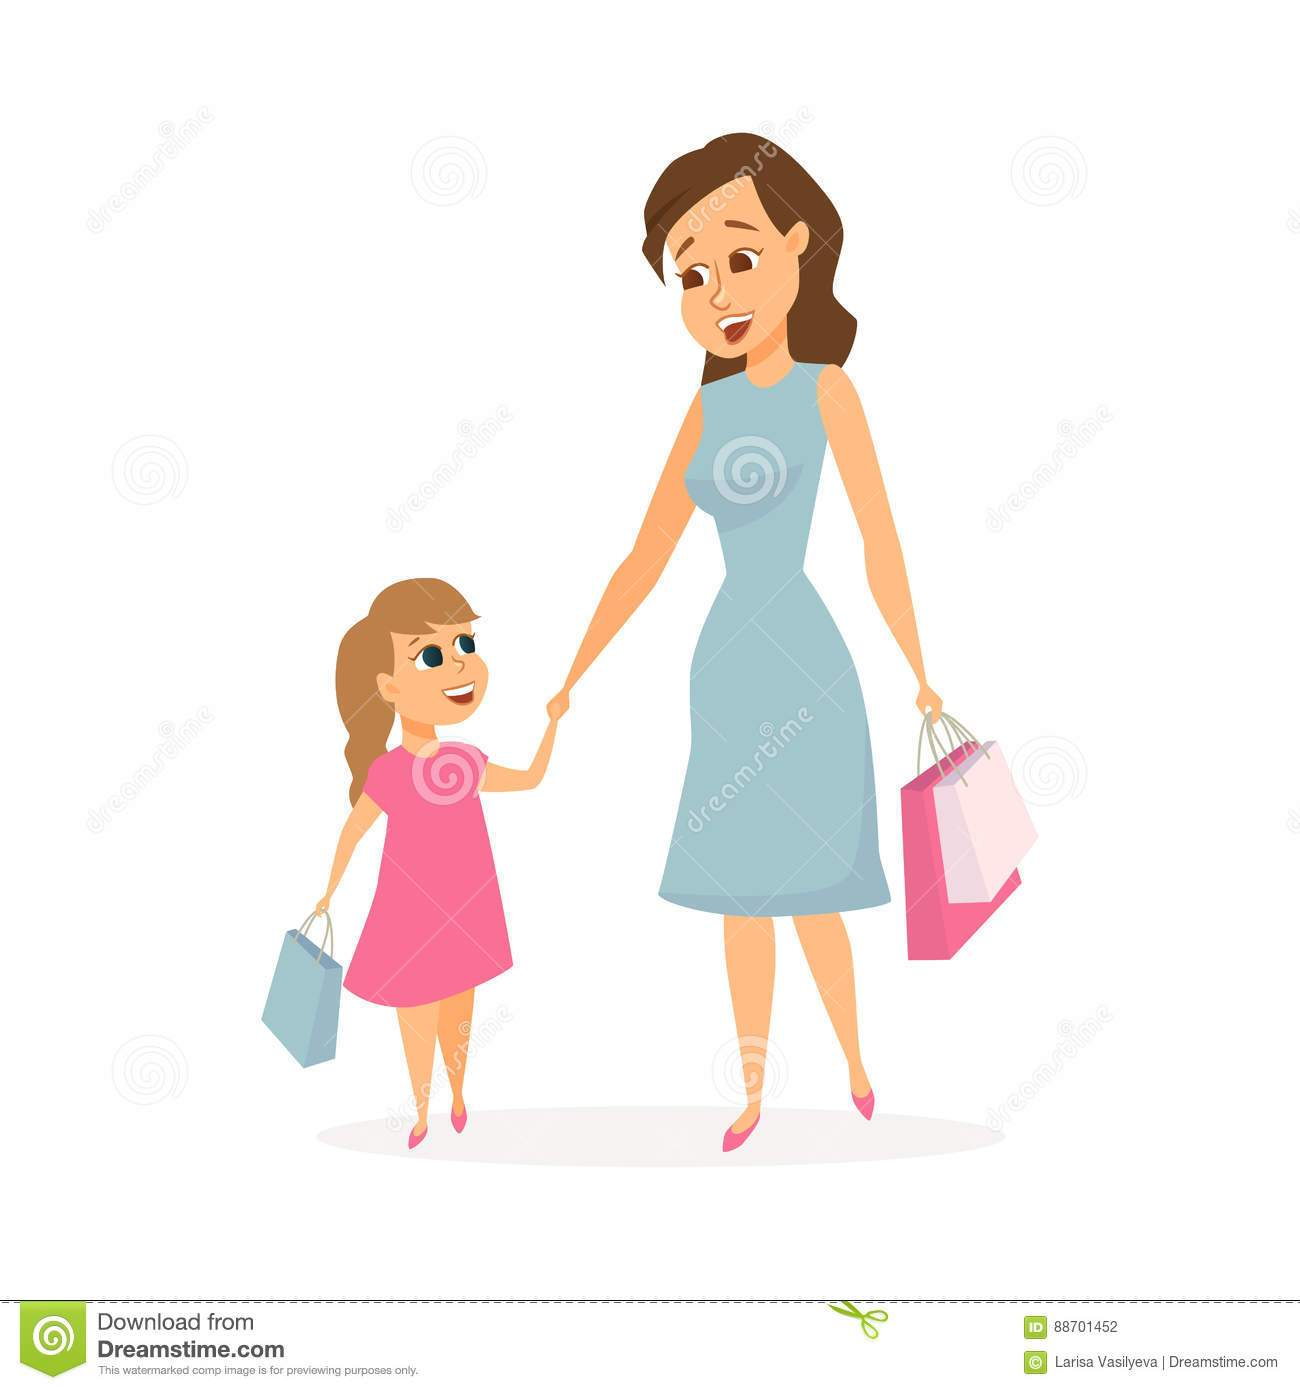 Mother and child holding hands clipart 1 » Clipart Portal.